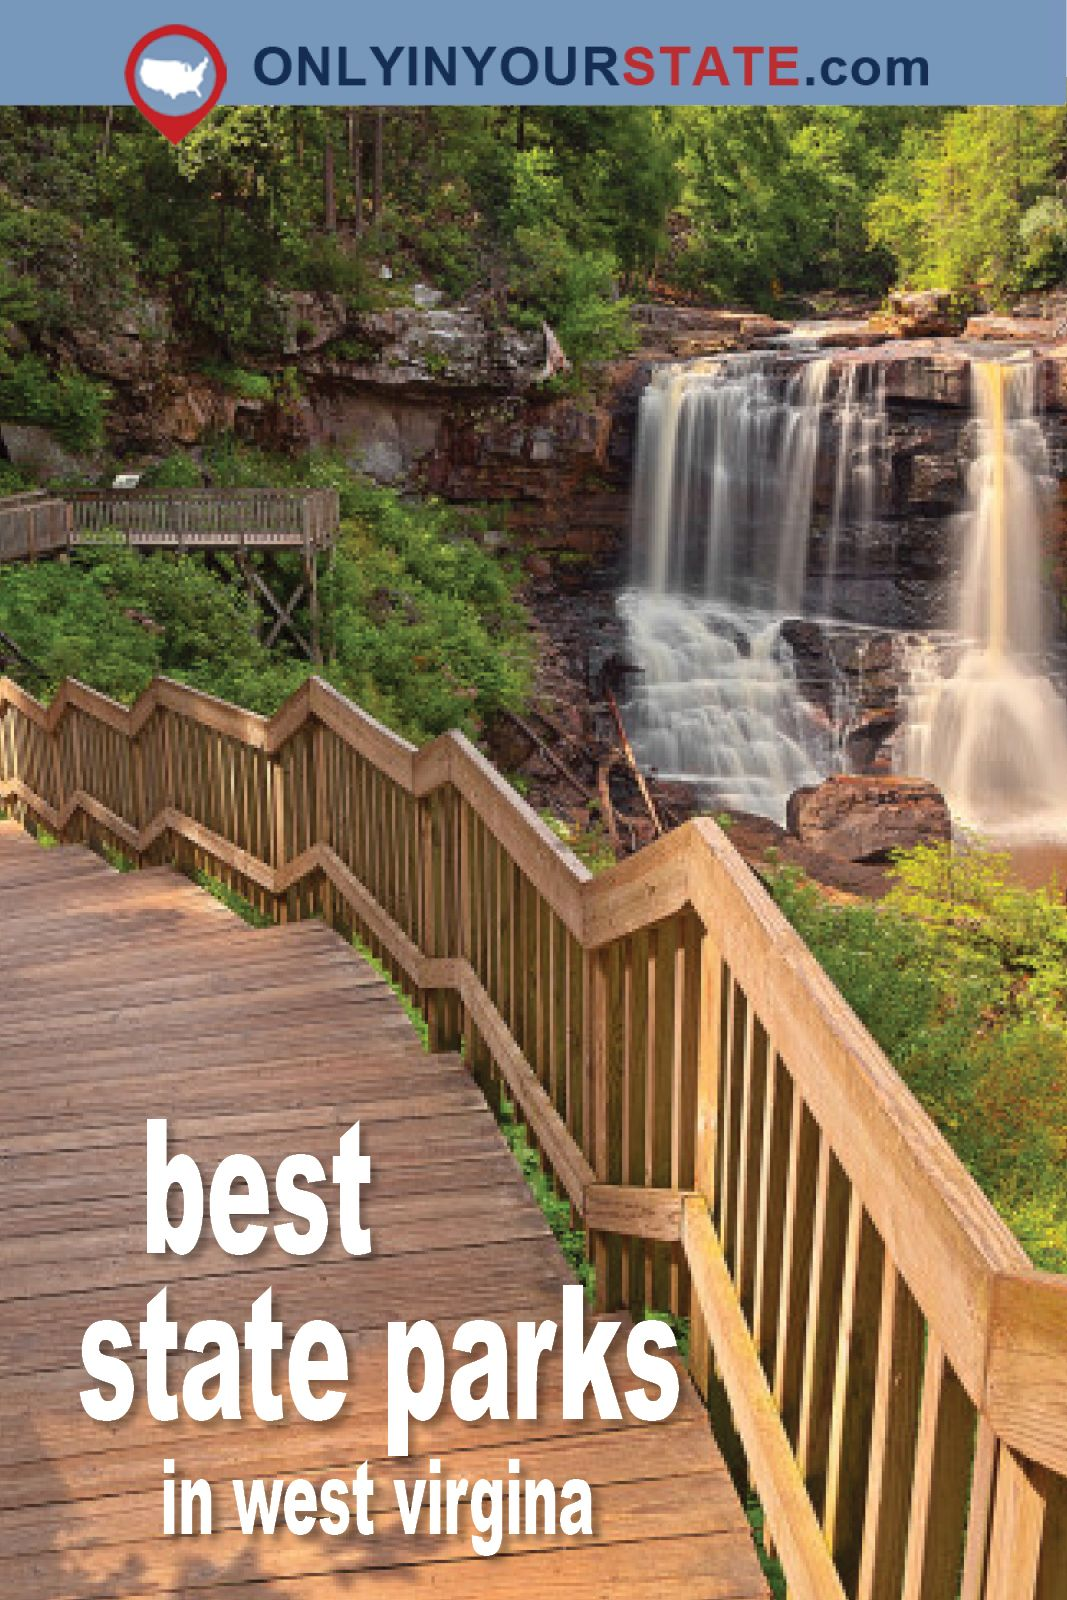 Travel | West Virginia | State Parks | Beautiful | Outdoor | Activities | Sight Seeing | Adventure | Unique | Places To Go | Things To Do | Best Hiking #westvirginia